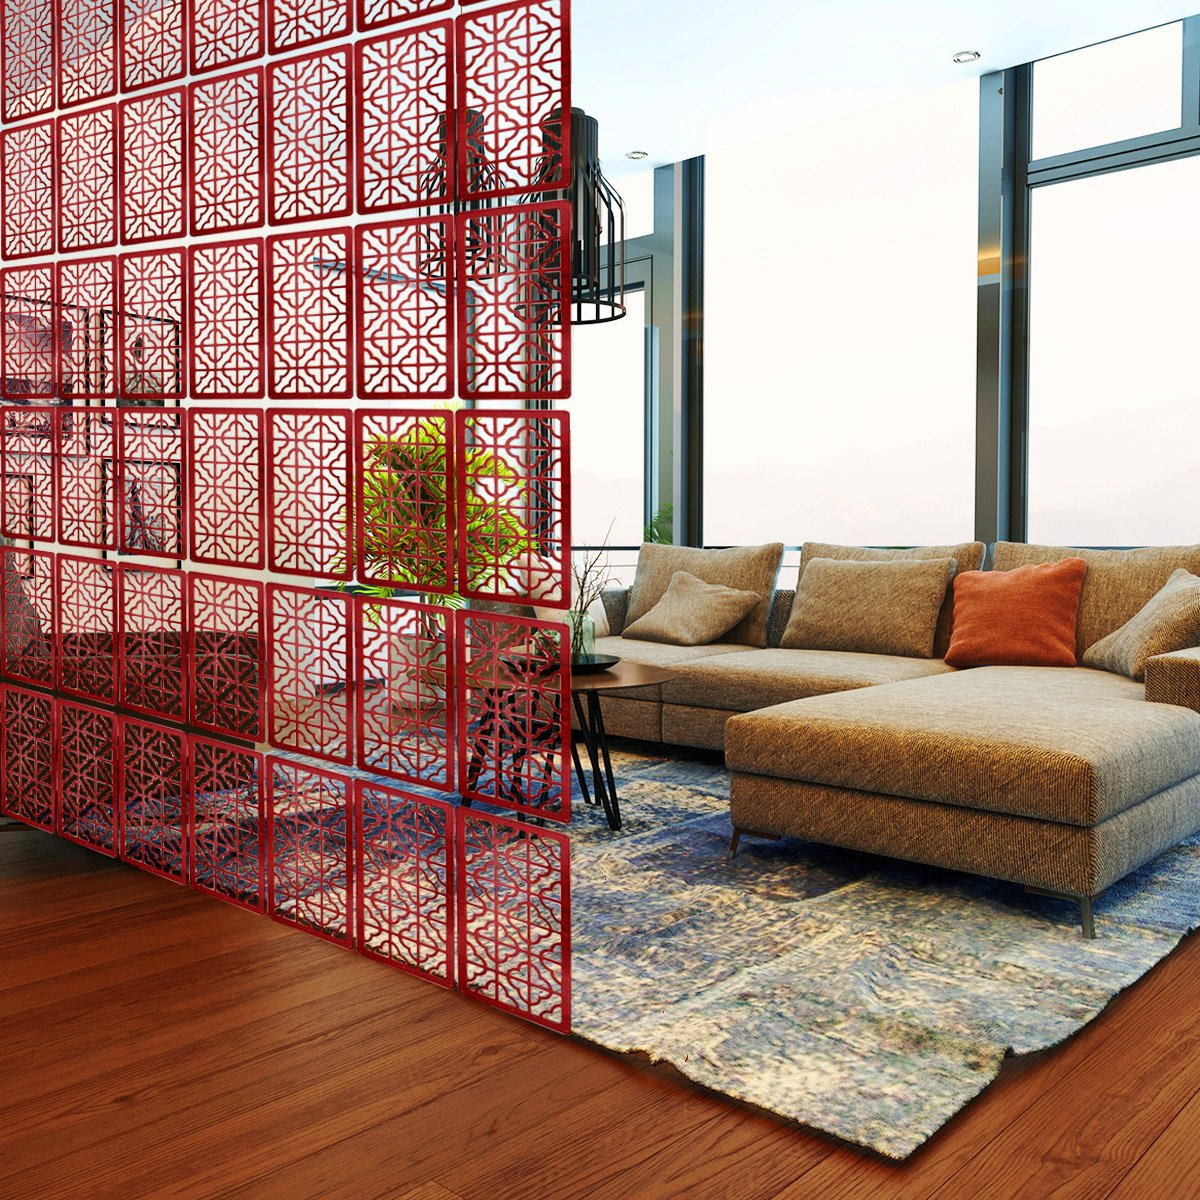 Lchen Hanging Wood Room Divider Environmentally Safety Panel Screen (4, Redwood03) LC-Trading Ltd.